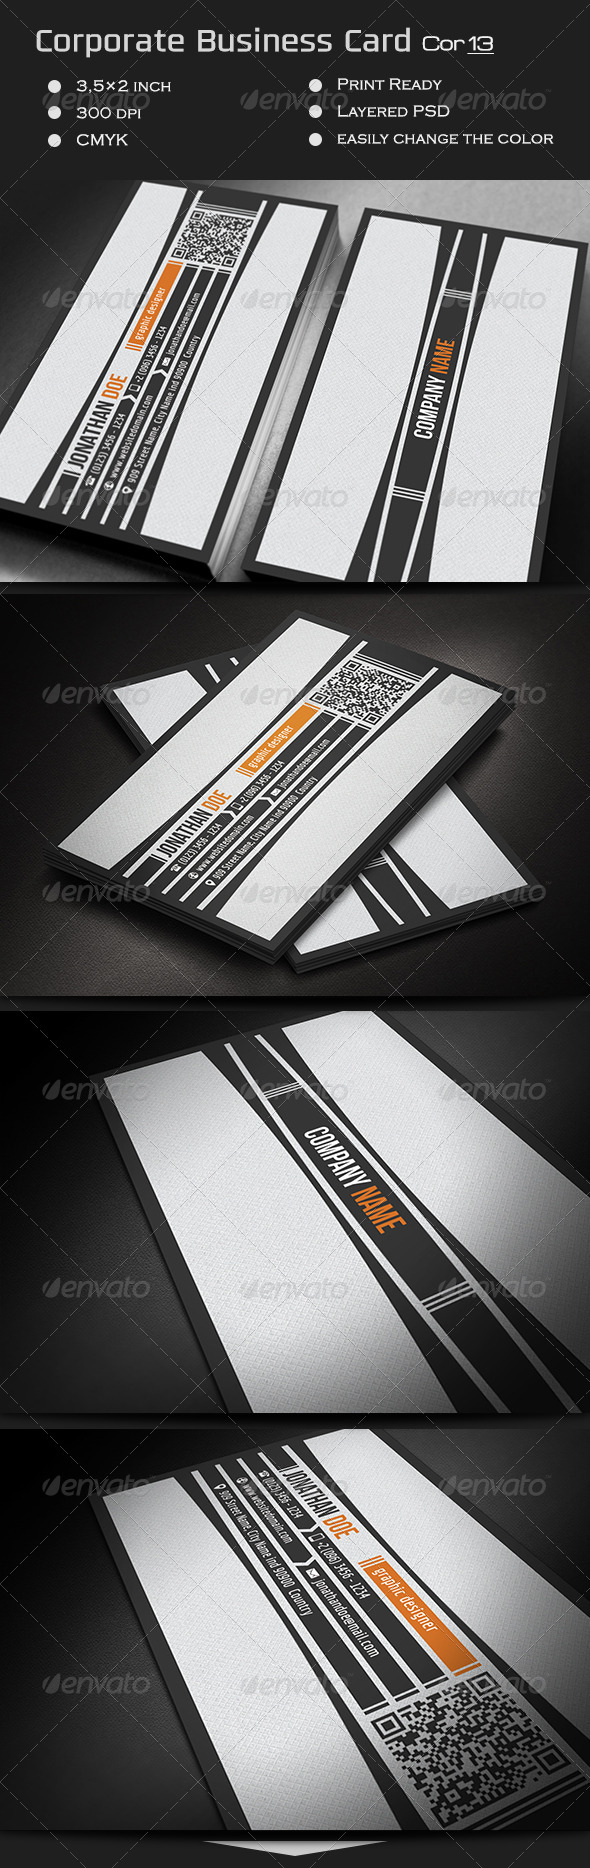 GraphicRiver Corporate Business Card Cor13 7490389